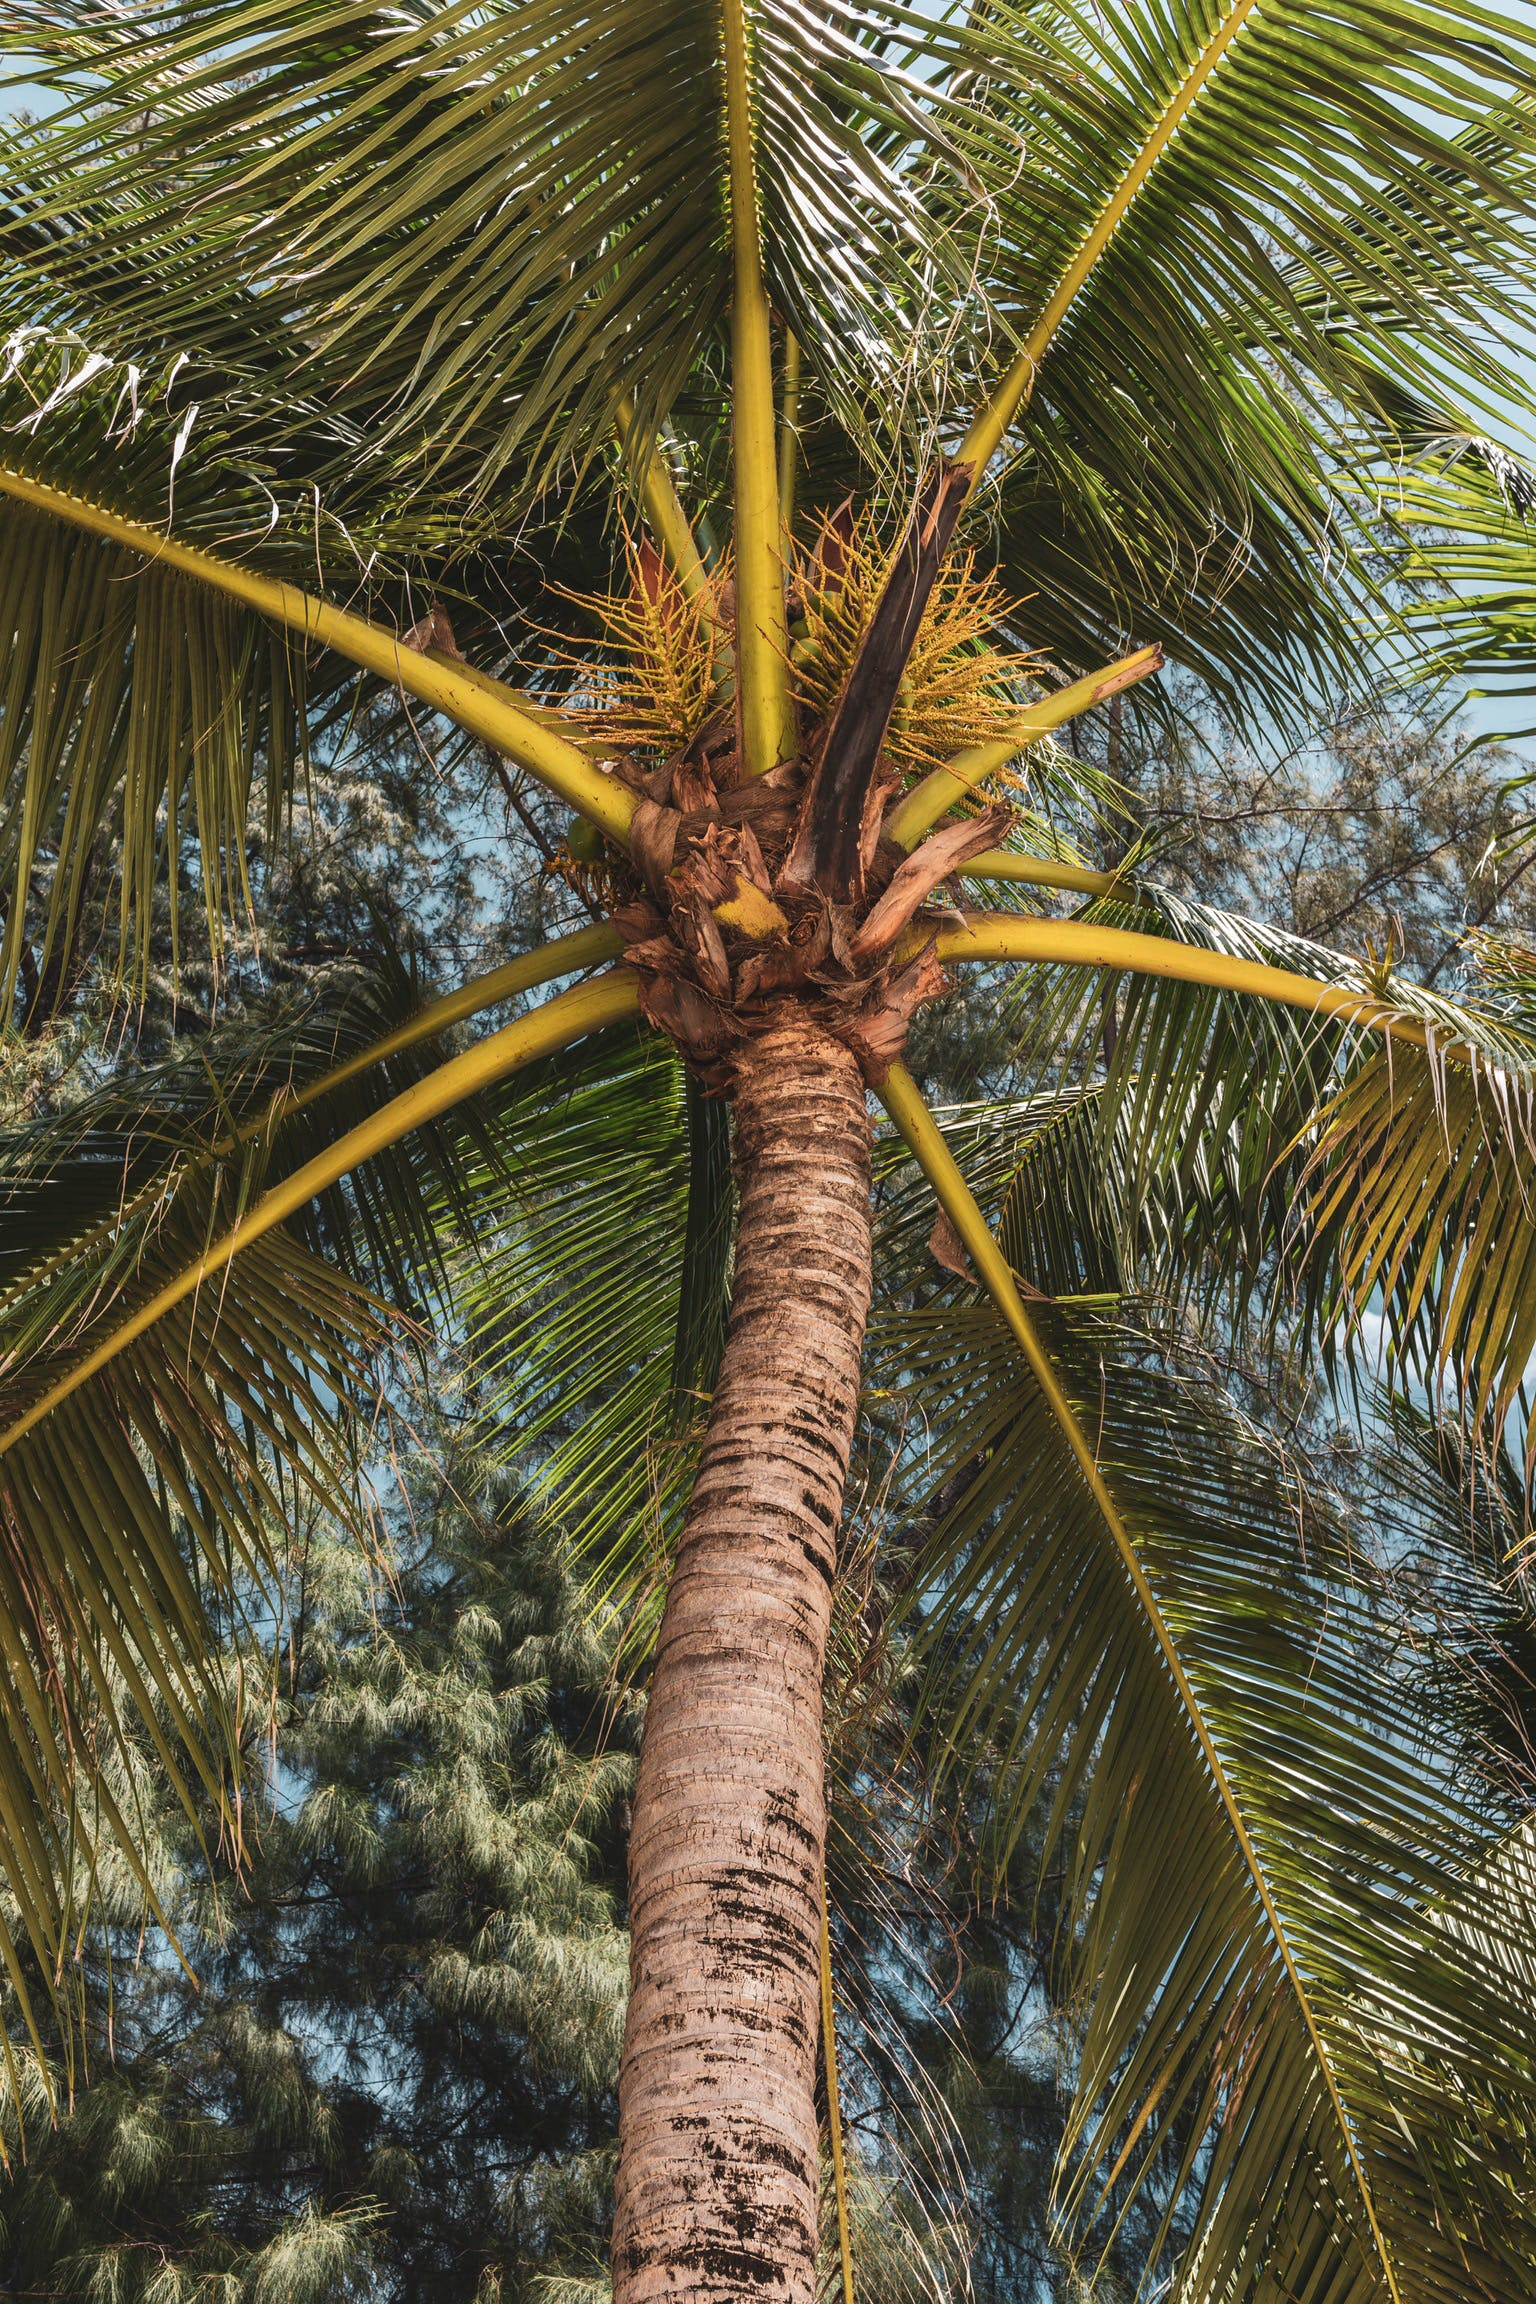 abstract photo, coconut tree, natural